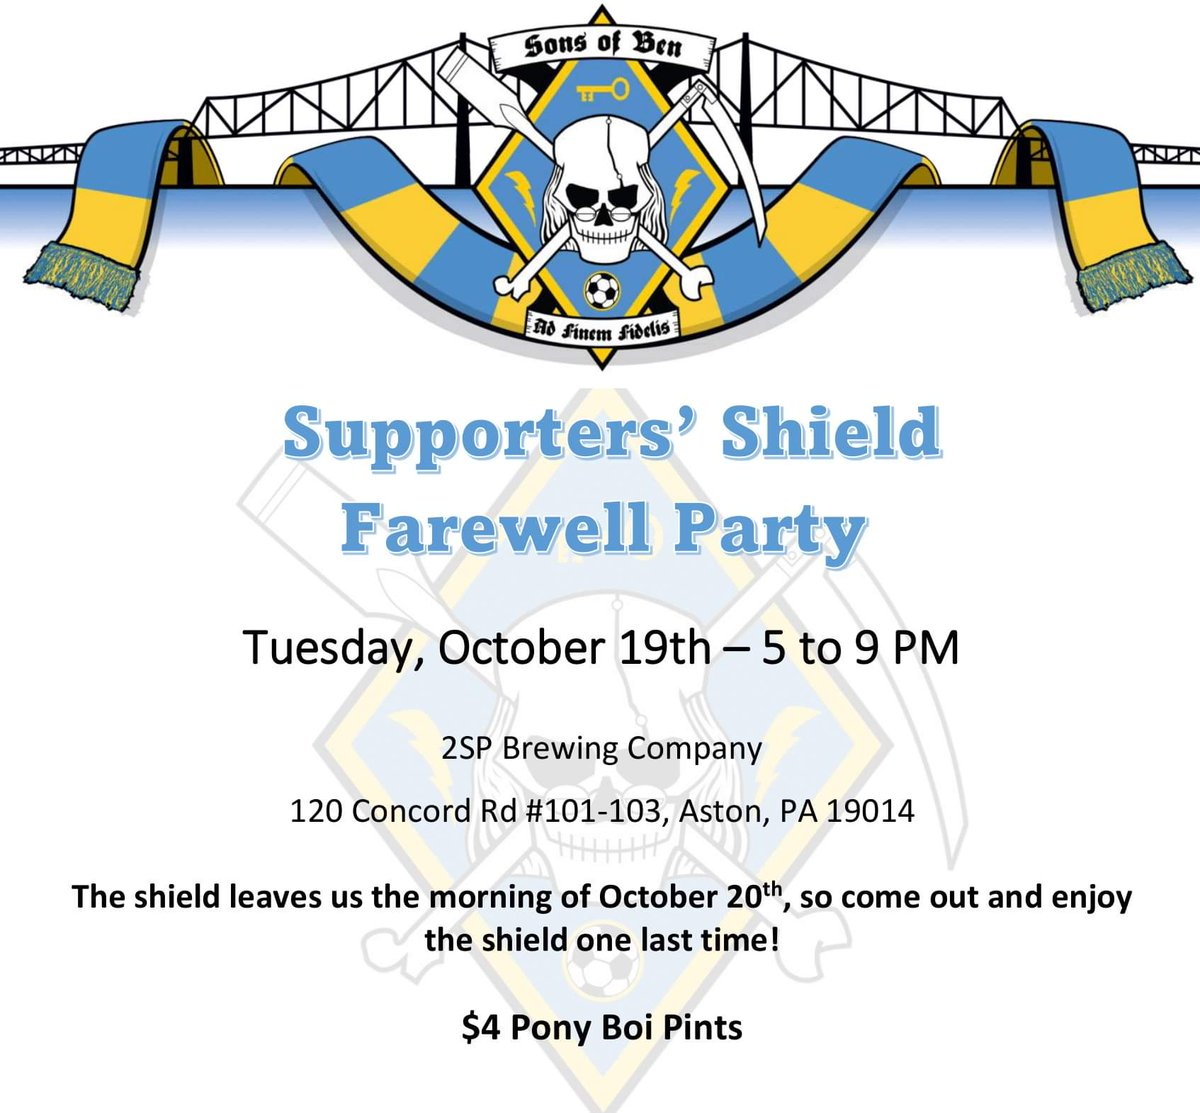 Come out tomorrow to say farewell to the Supporters' Shield...😢 Let's raise her up high one last time until we get her again!! 📍 @2spbrewing 🕔 5:00pm-9:00pm